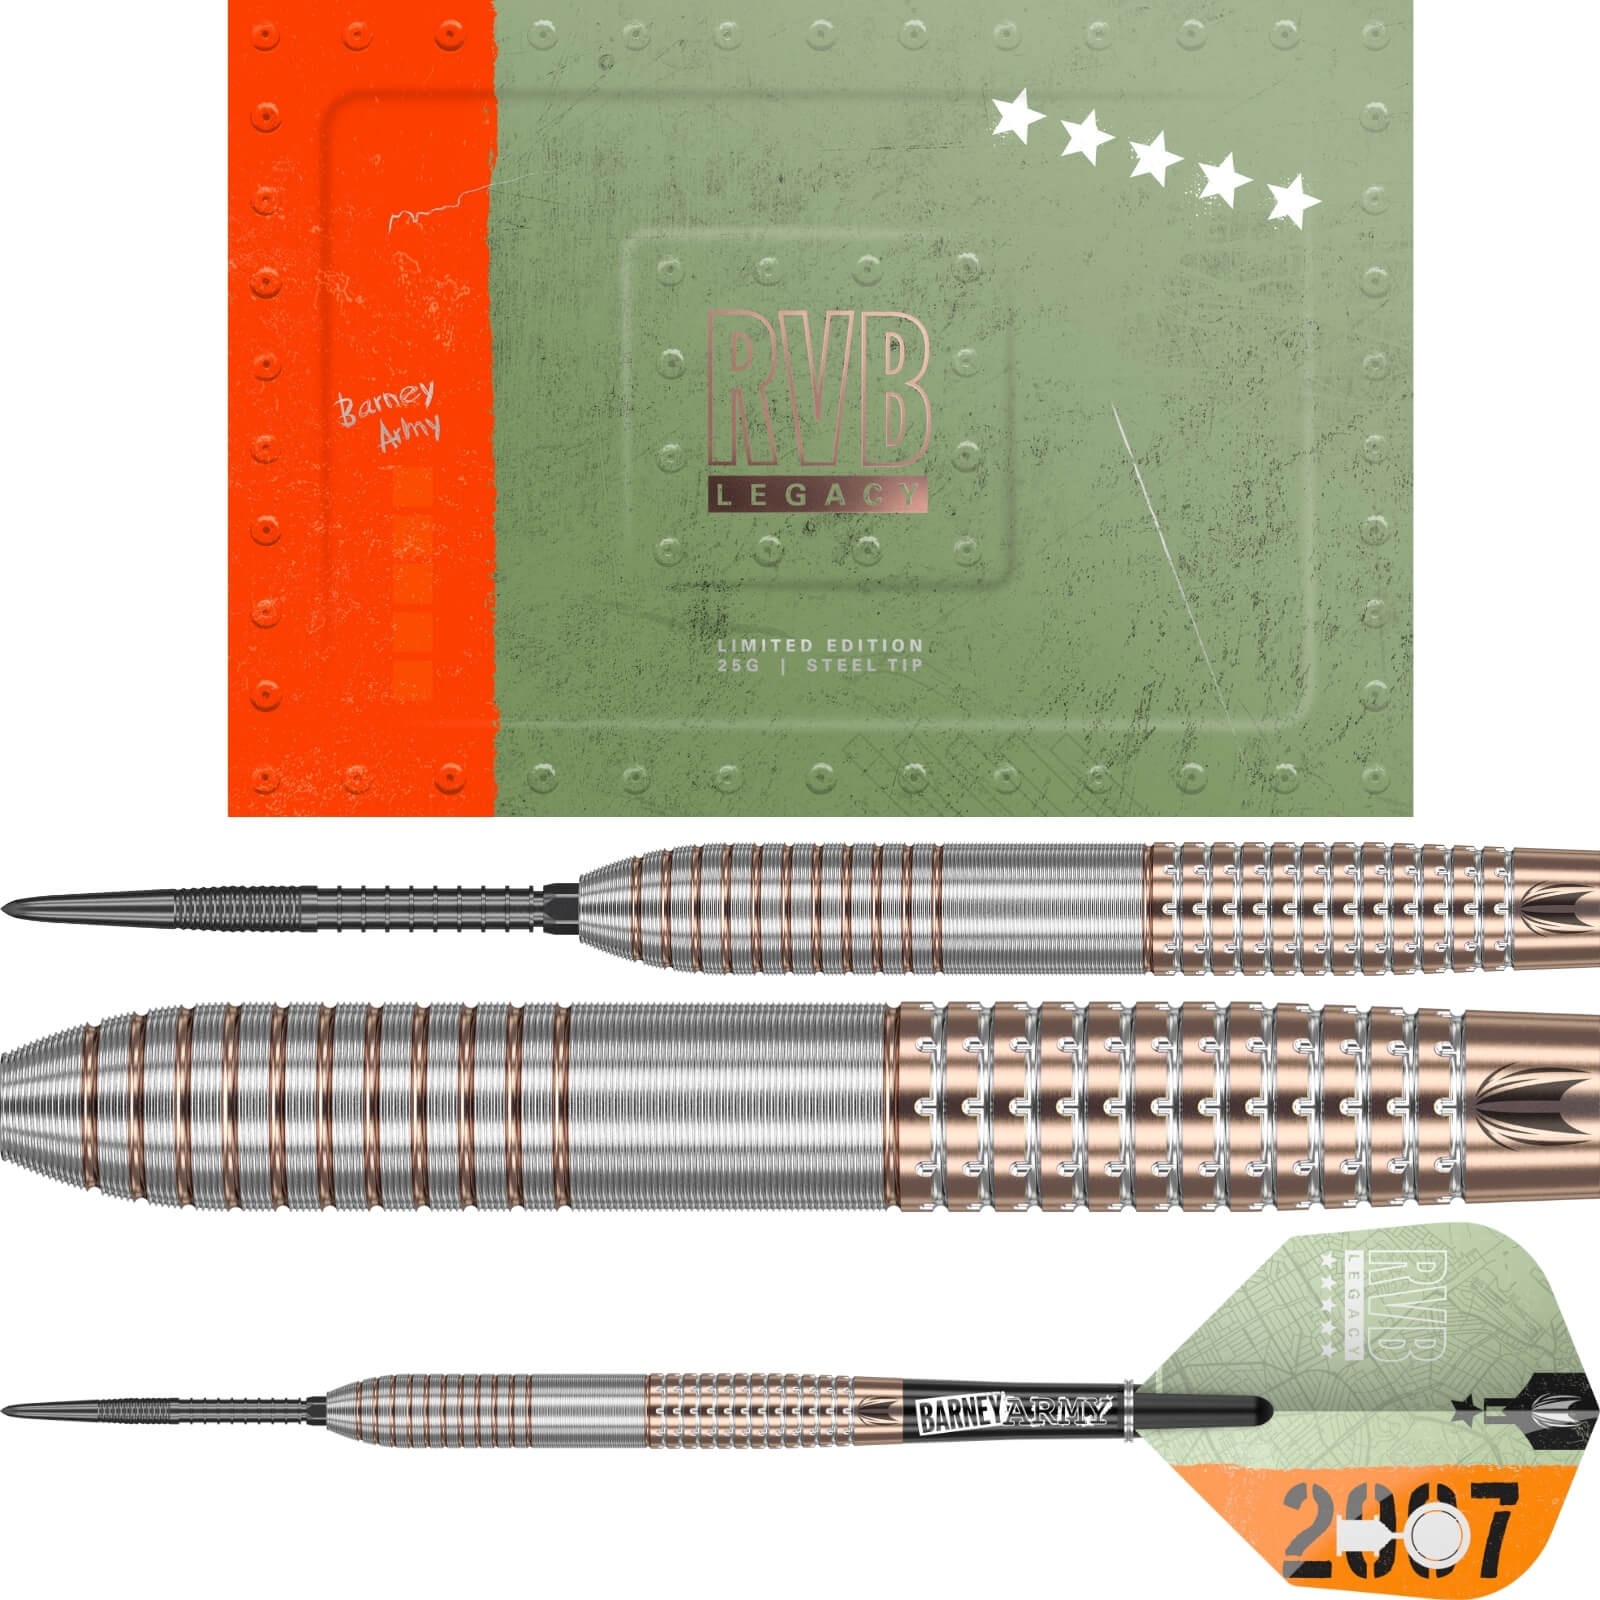 Darts - Target - RvB SP Legacy Darts - Limited Edition - Steel Tip - 95% Tungsten - 25g